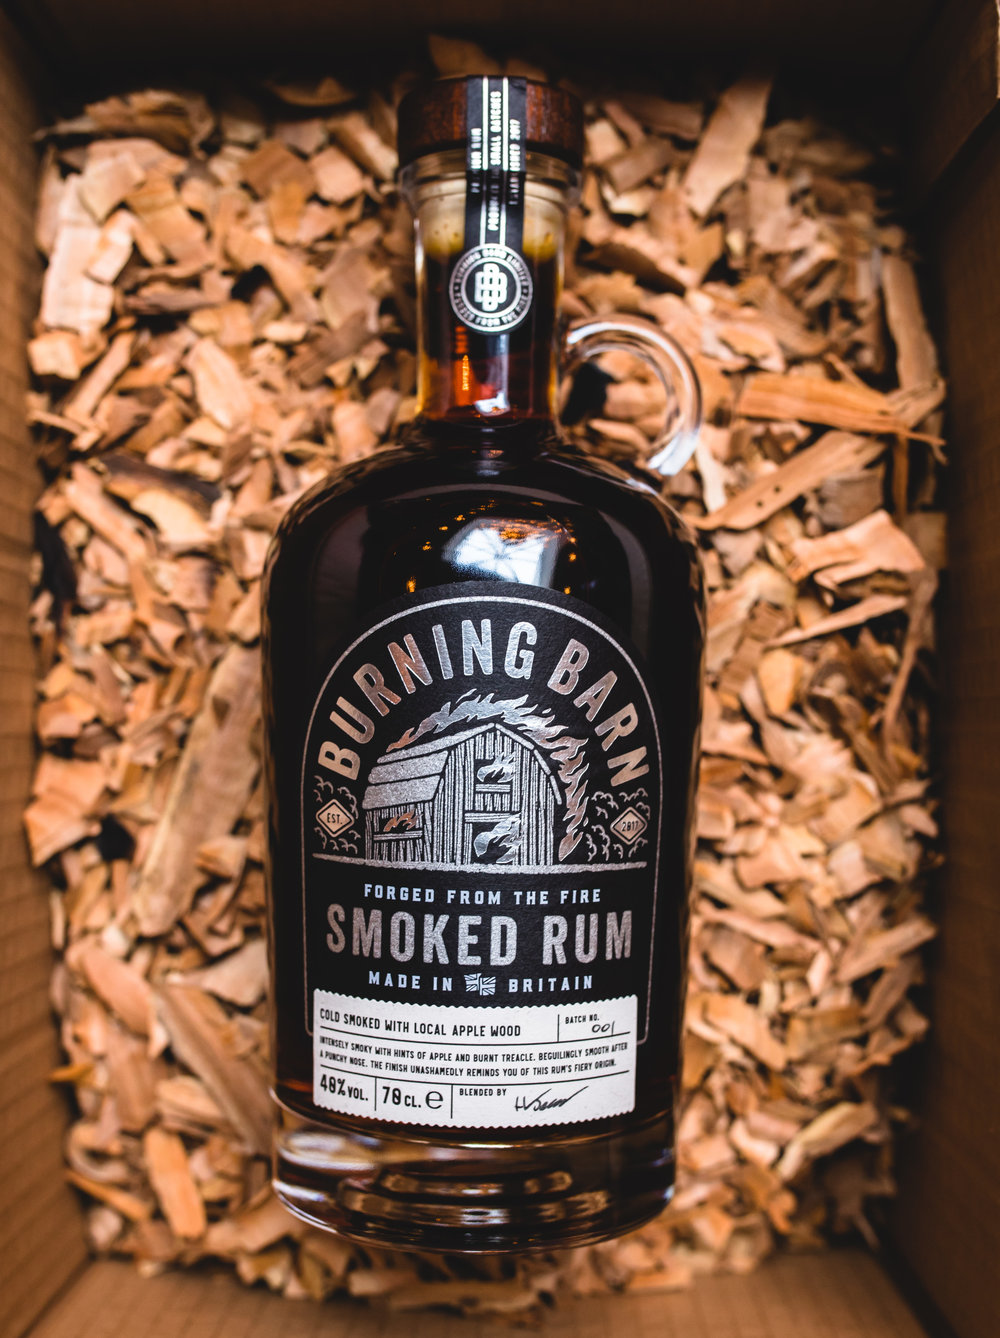 SMOKED RUMThe UK's first Smoked RumThe finest dark rumcold smoked with local apple wood for a uniquely smoky taste -